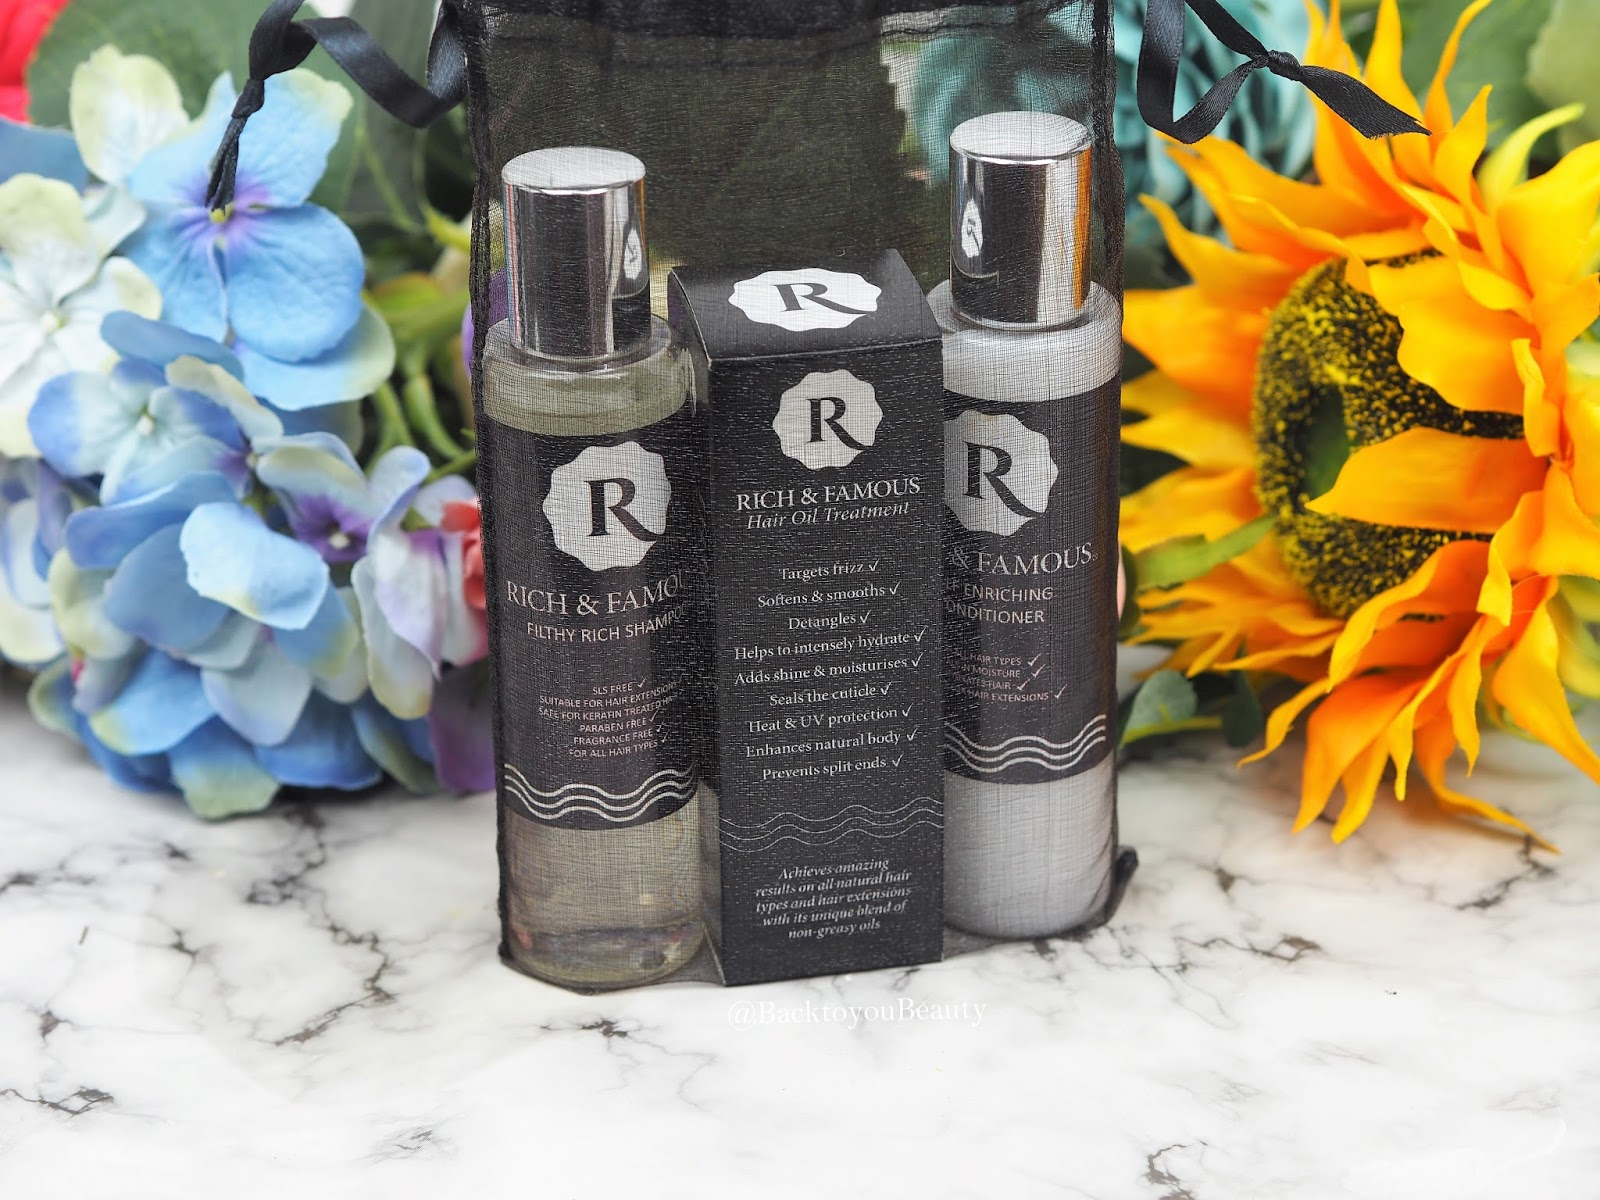 Rich & Famous Haircare Gift Set